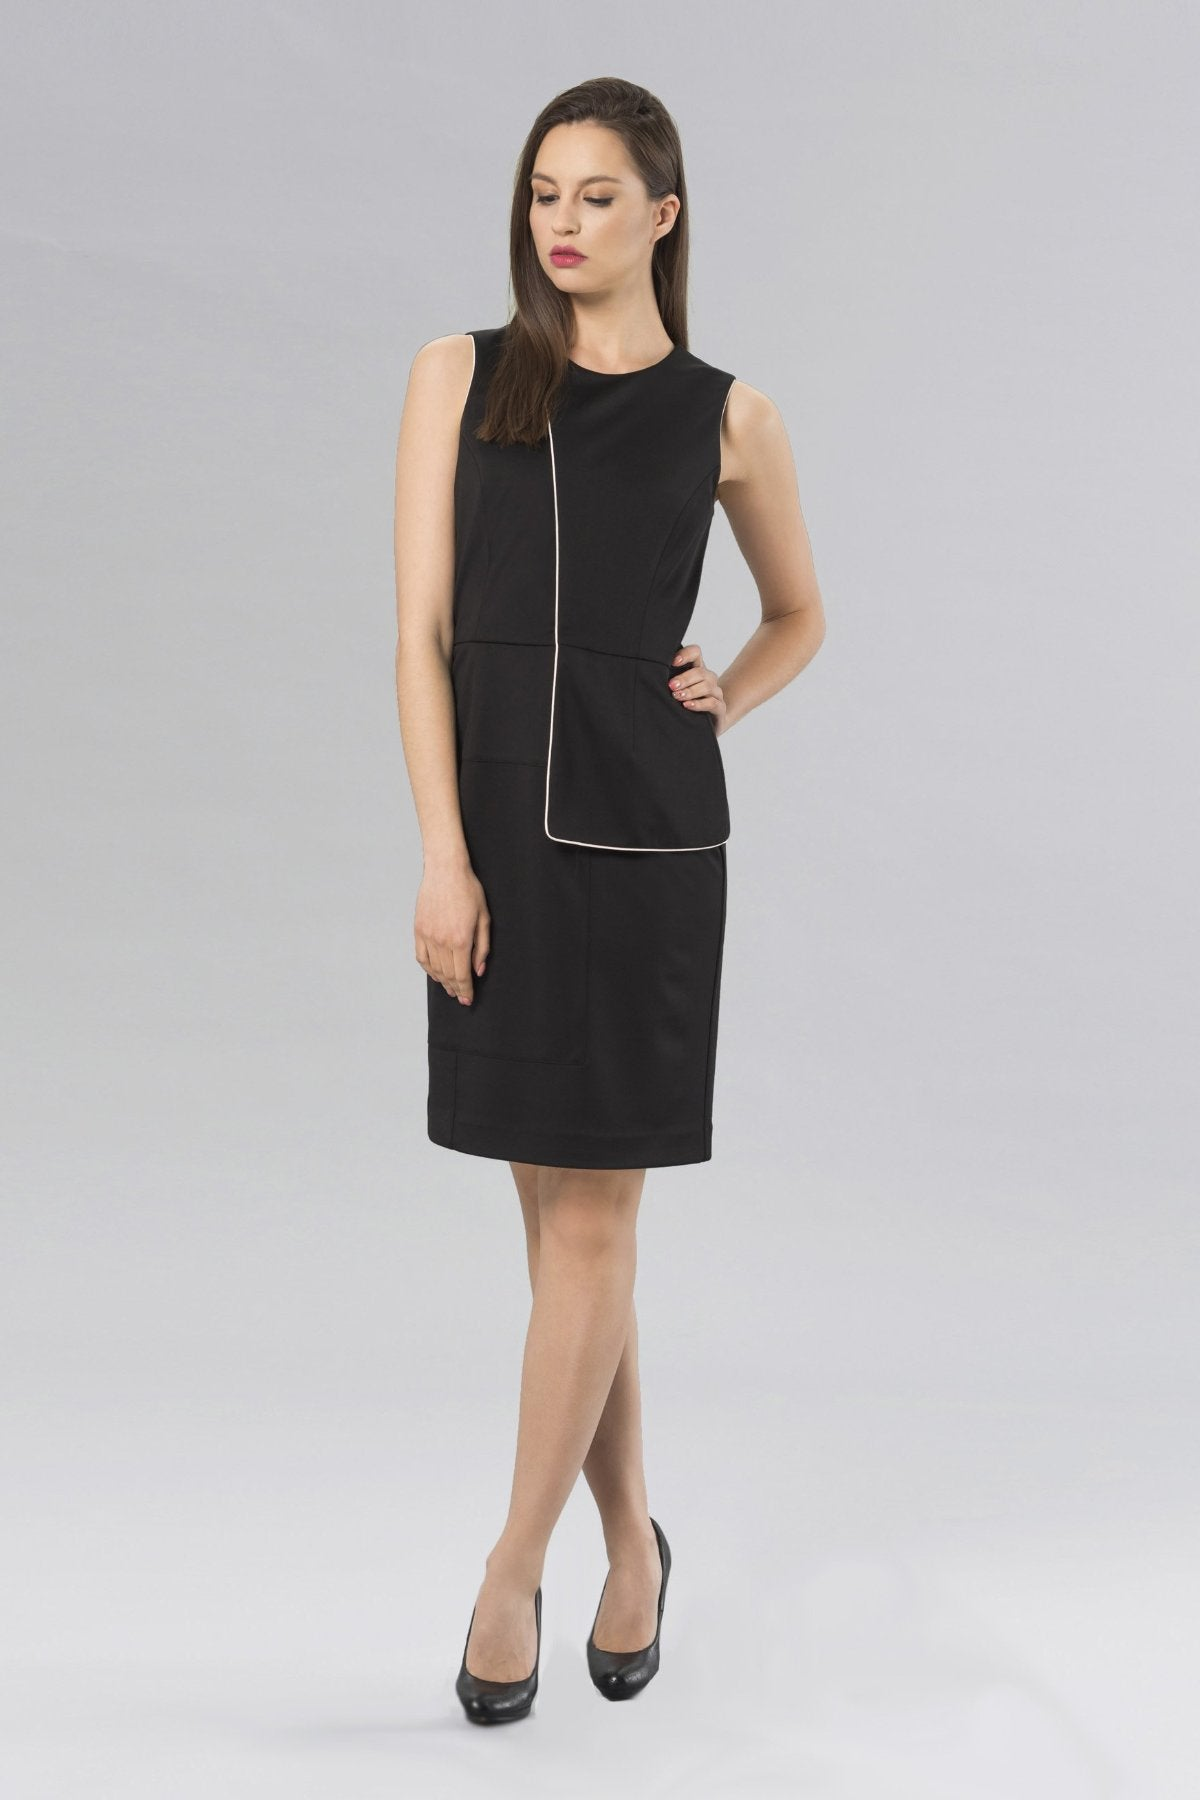 Women's Anina Peplum Dress in Black | Nora Gardner -  Front